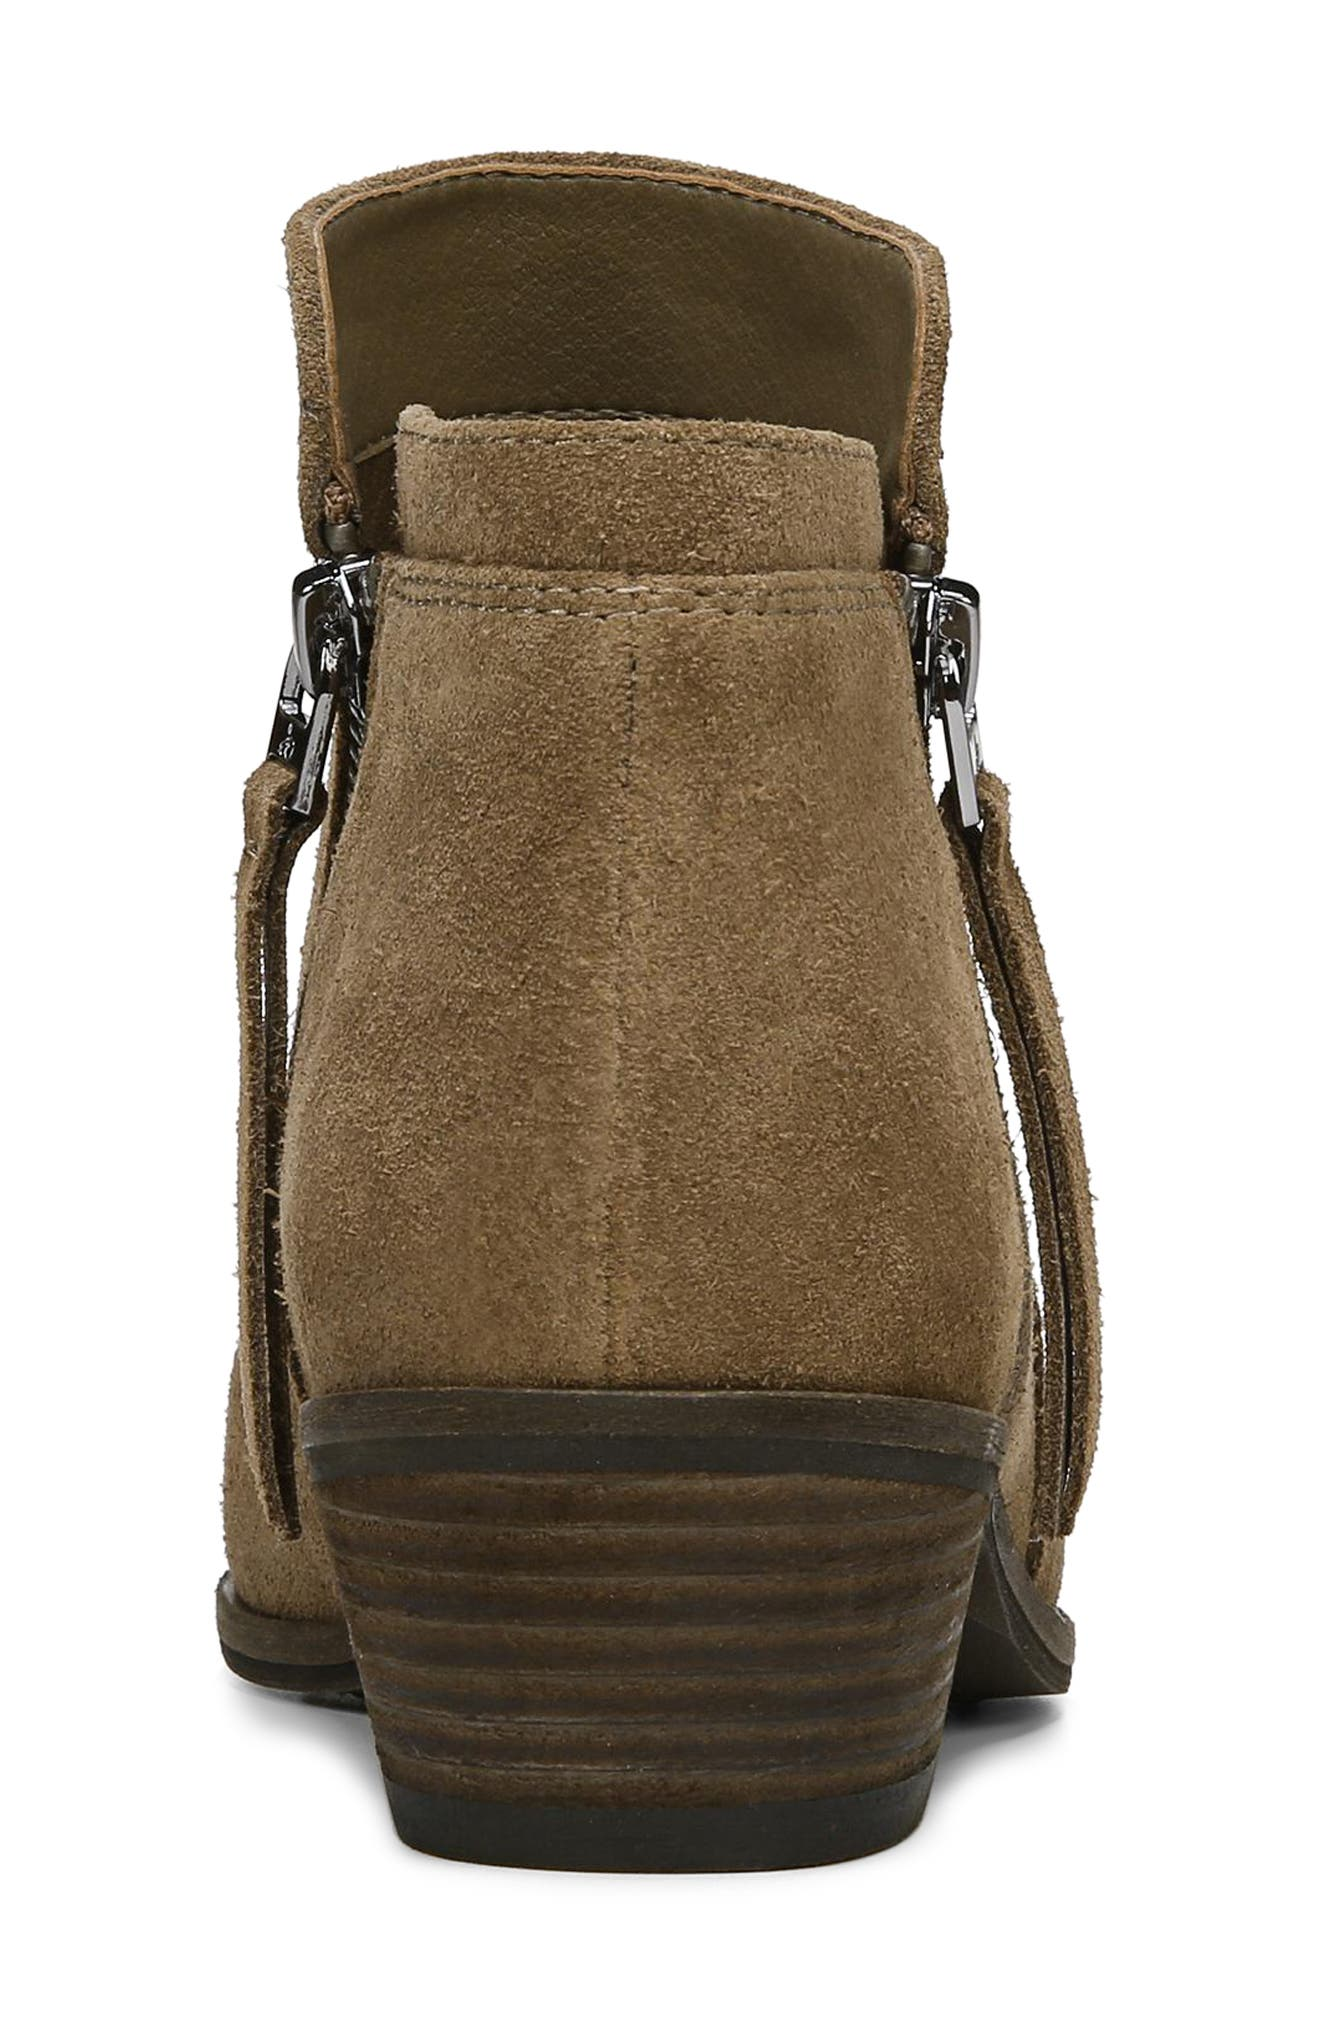 Packer Bootie,                             Alternate thumbnail 9, color,                             DARK TAUPE SUEDE LEATHER